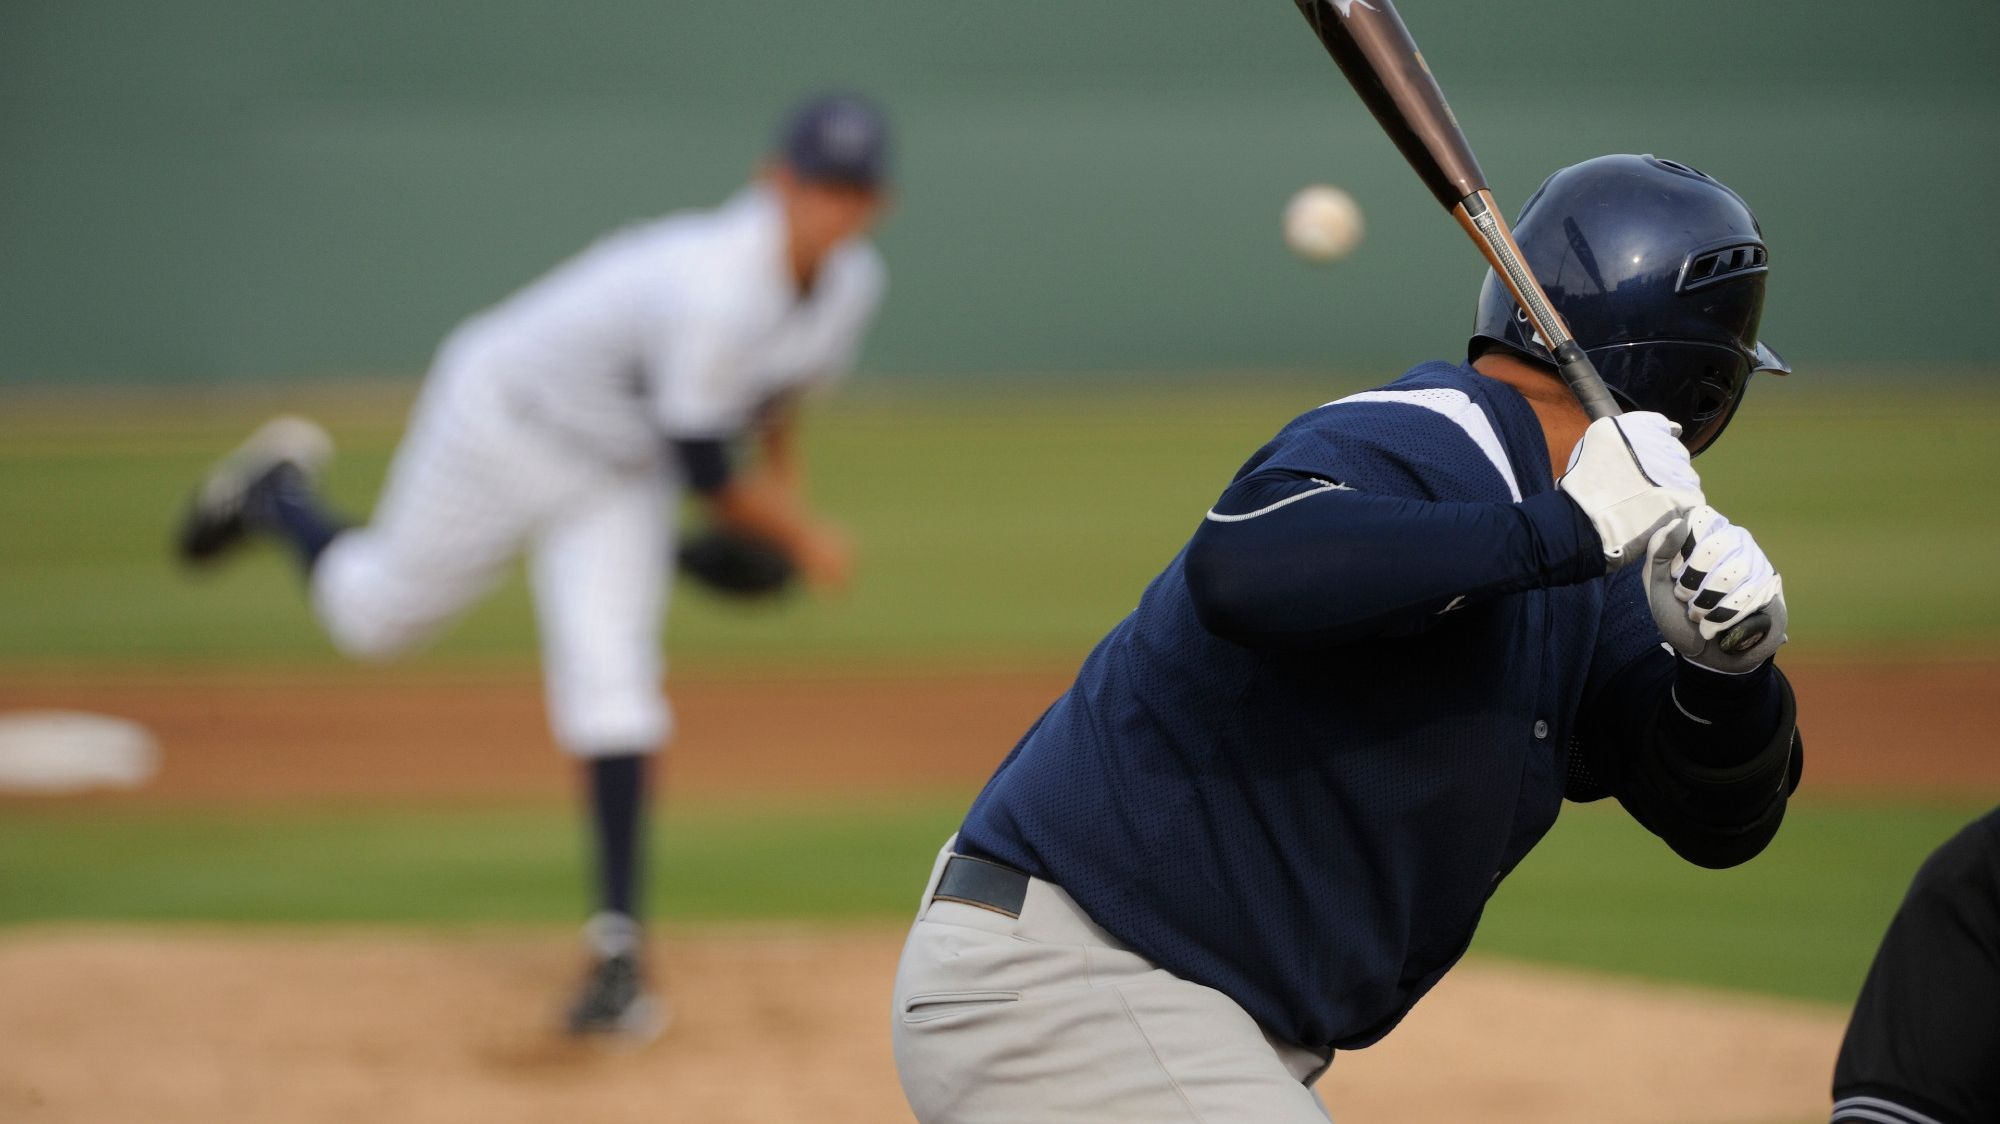 Batter Up: The Reason Why Aluminum Bats Aren't Allowed in MLB